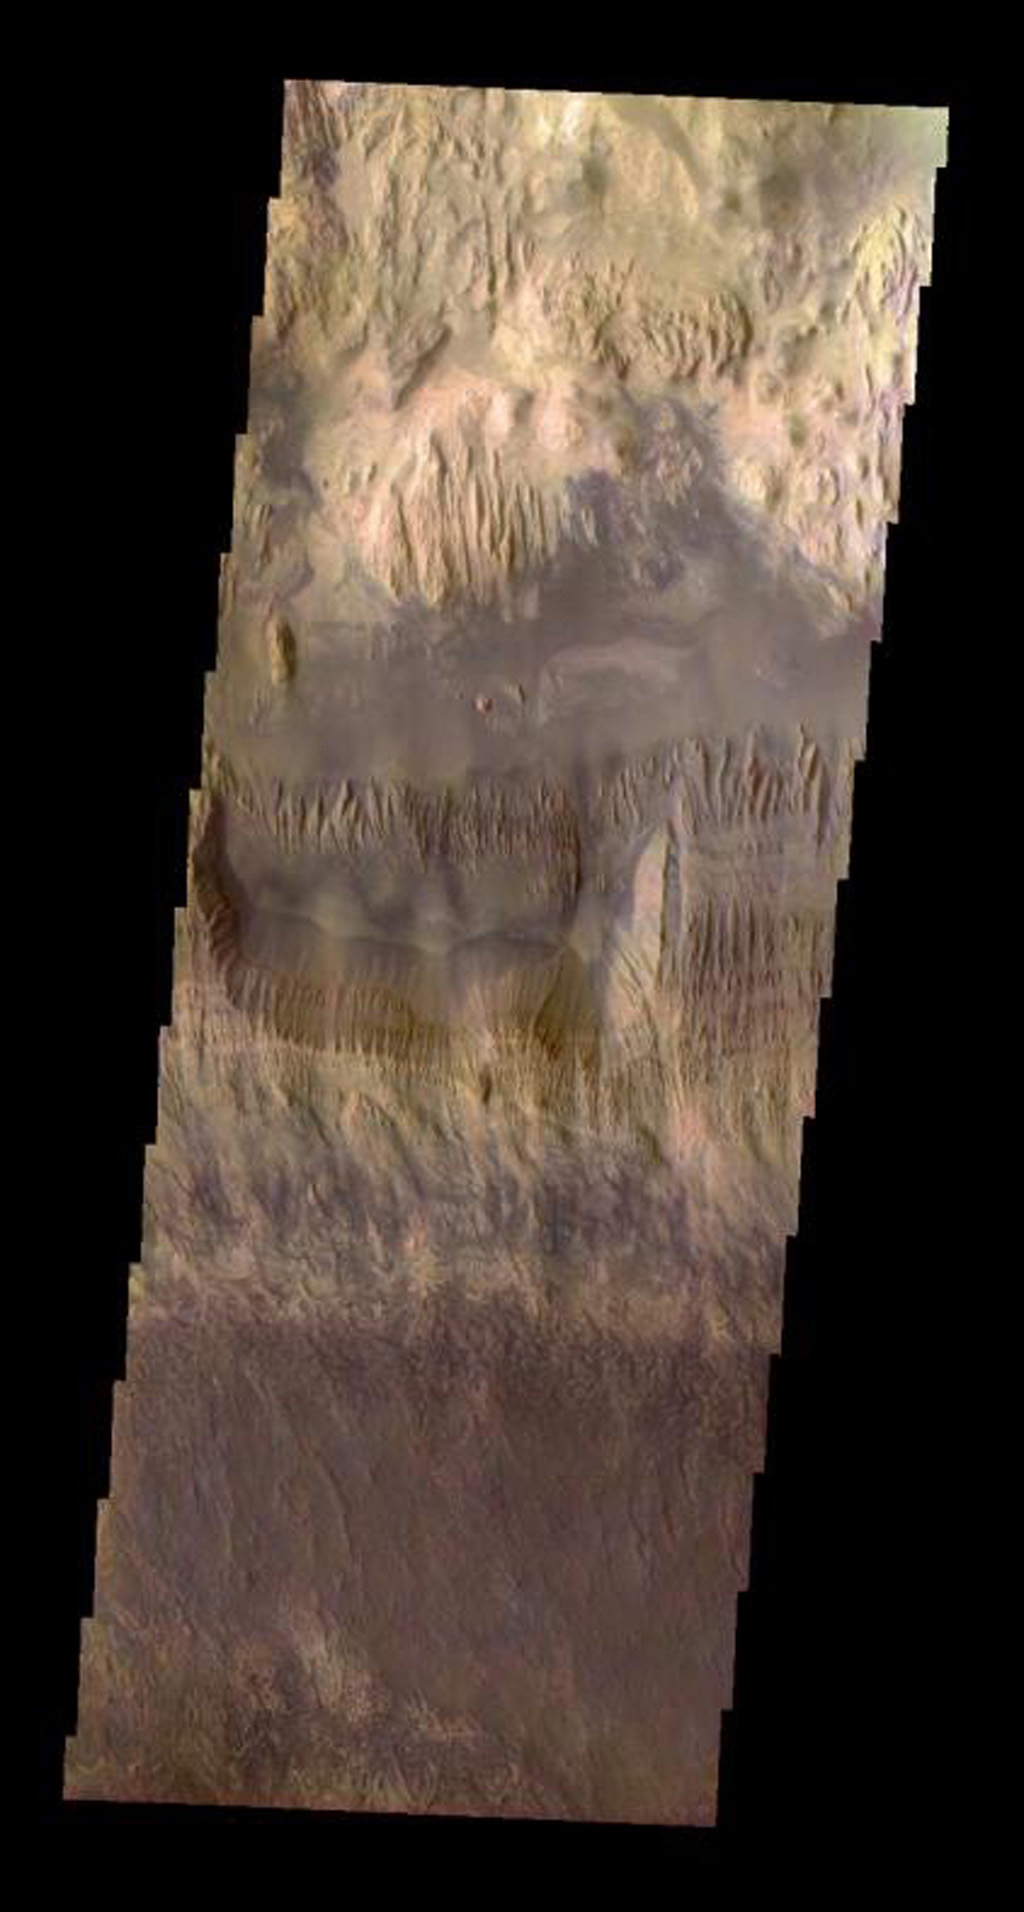 This true-color image in hues of reddish-brown released on June 9, 2004 from NASA's 2001 Mars Odyssey shows the area of Hebes Mensa on Mars.